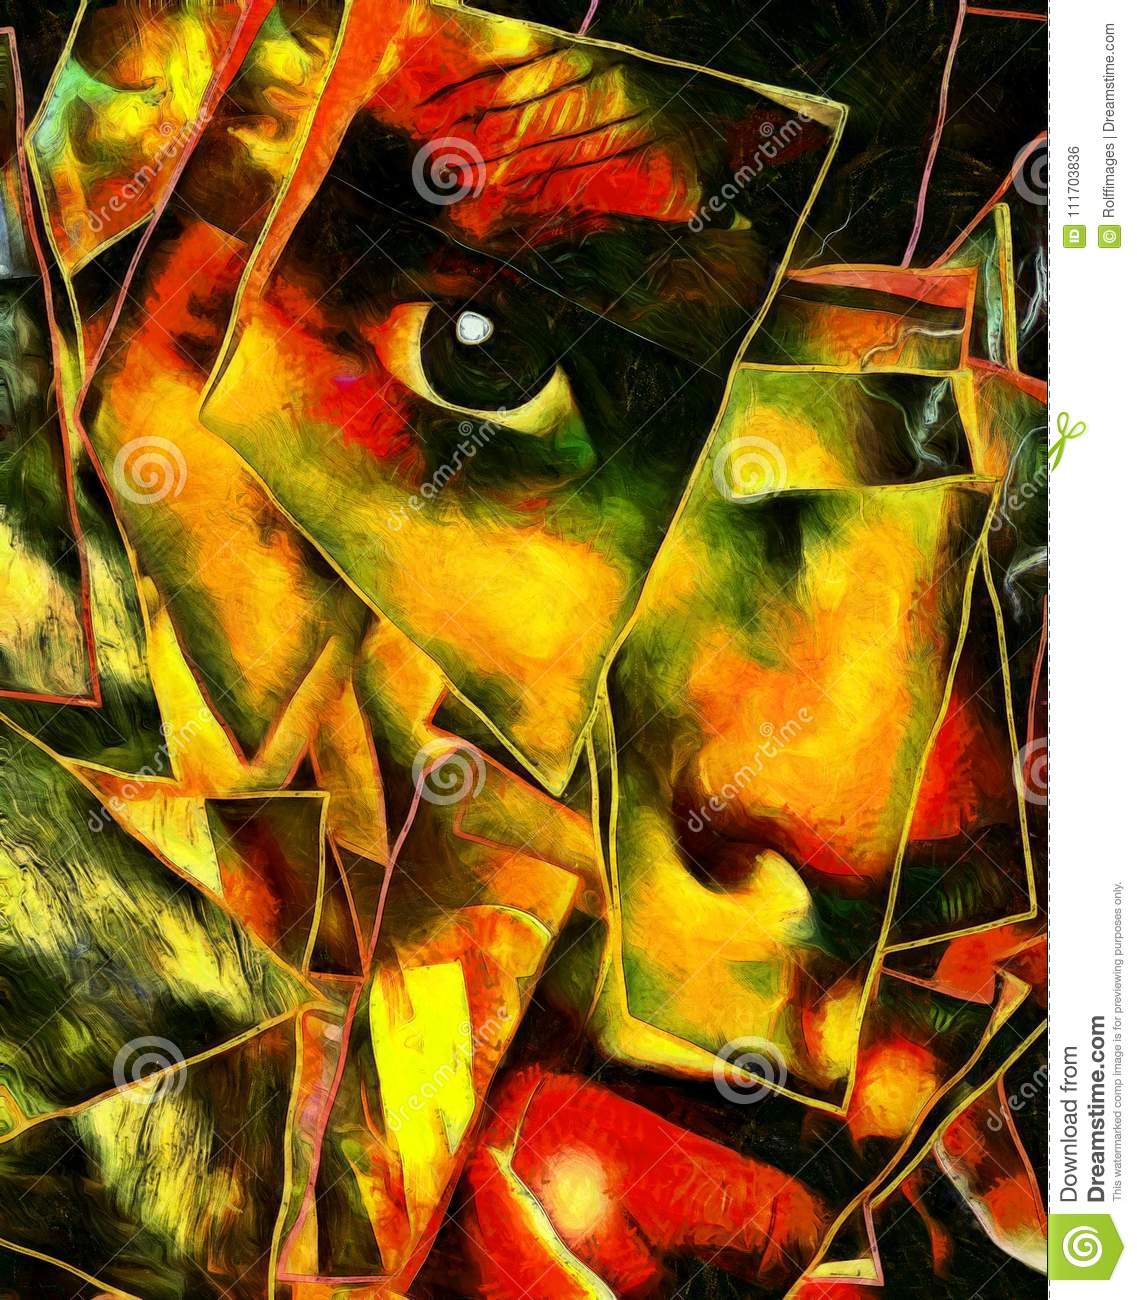 Art Abstract Emotion Fear